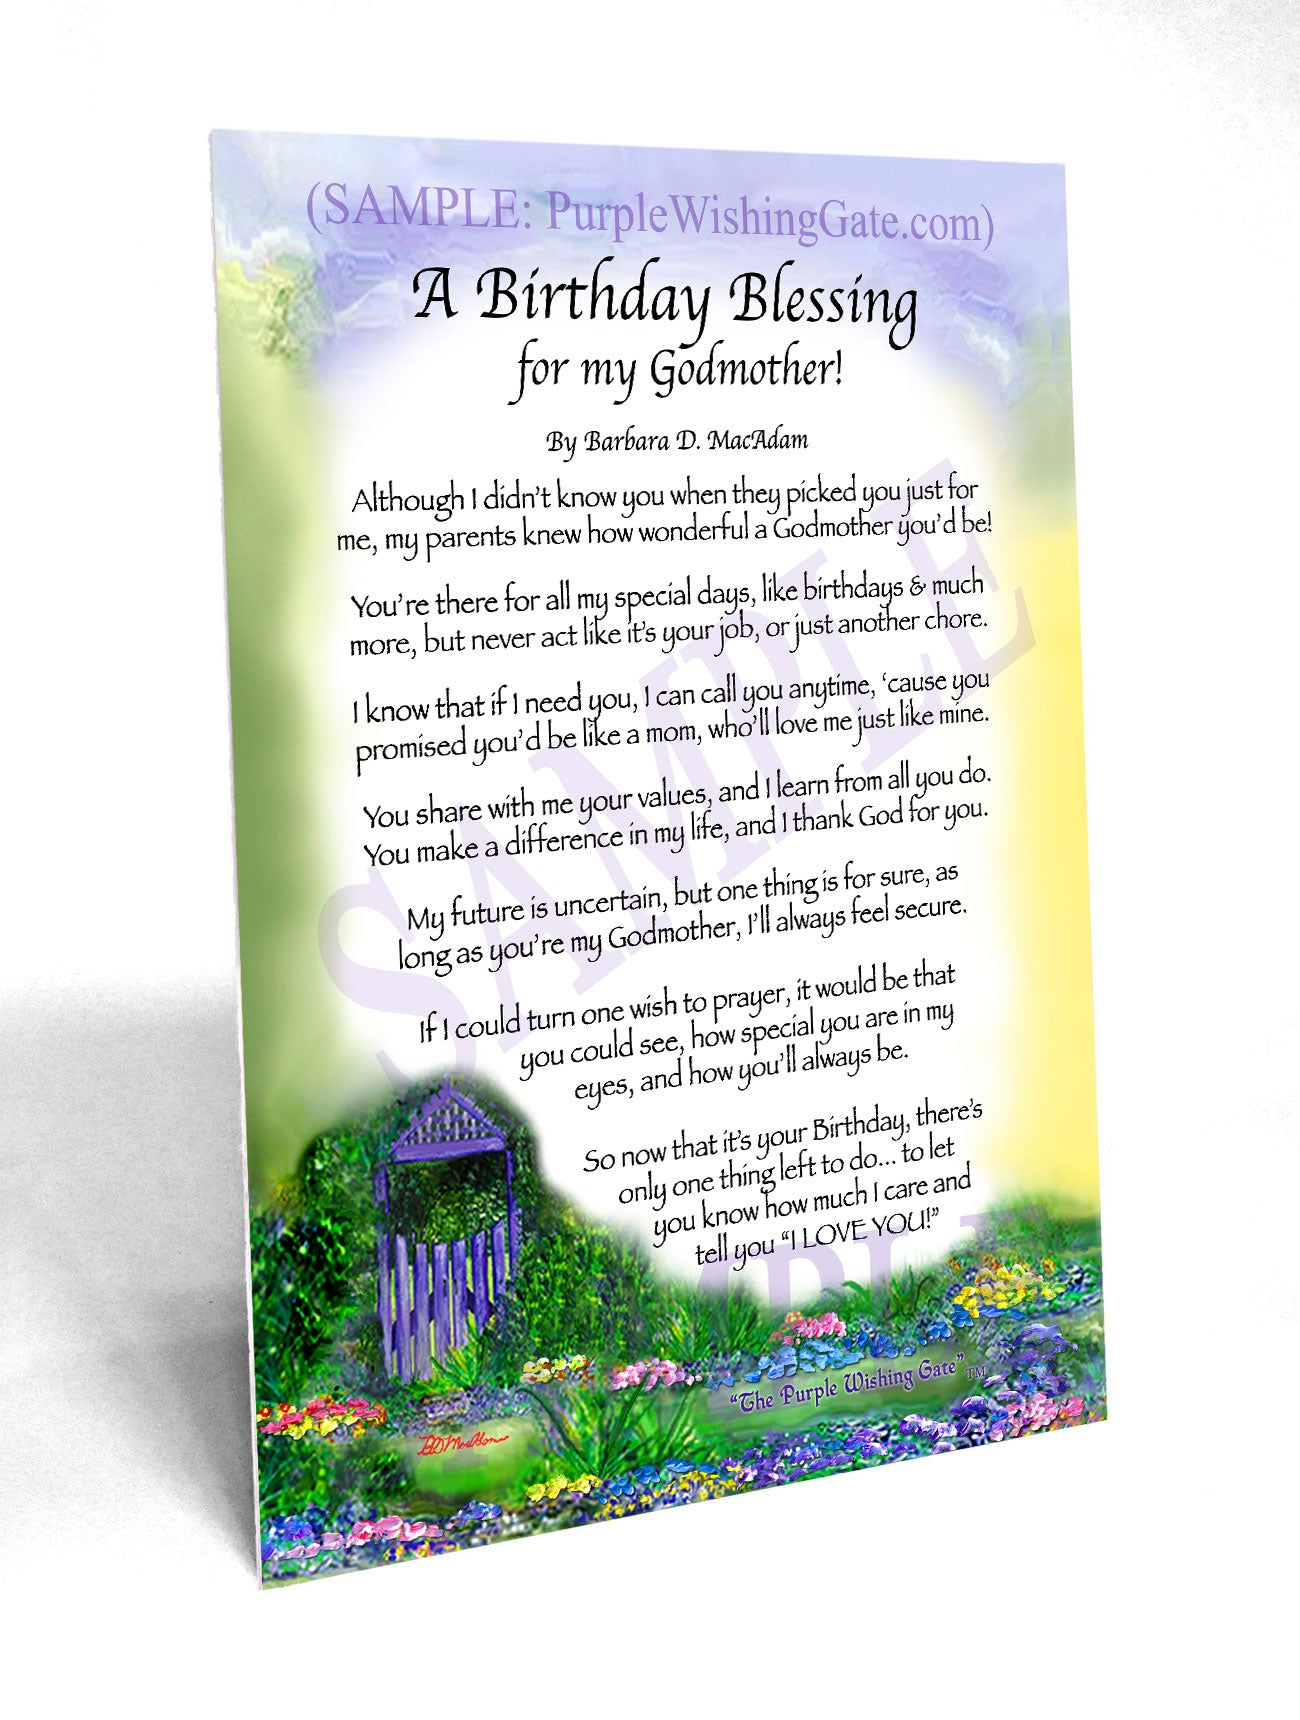 A Birthday Blessing for my Godmother! - Birthday Gift - PurpleWishingGate.com